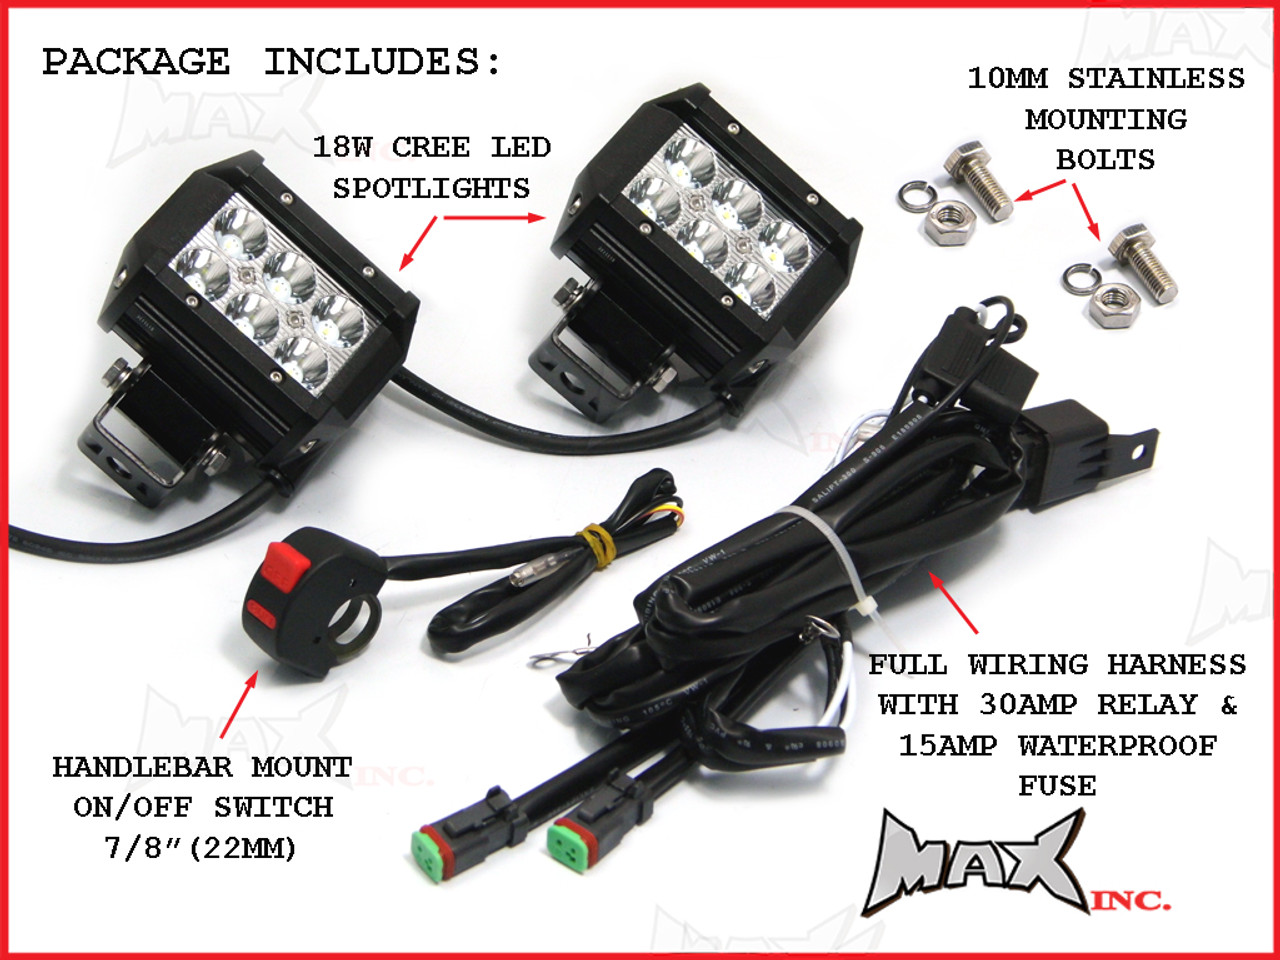 Cree Led Wiring Diagrams 88light 3 Watt Dimmable Puck Light Motorcycle Universal 18w Spot Driving Lights Complete Bulbs